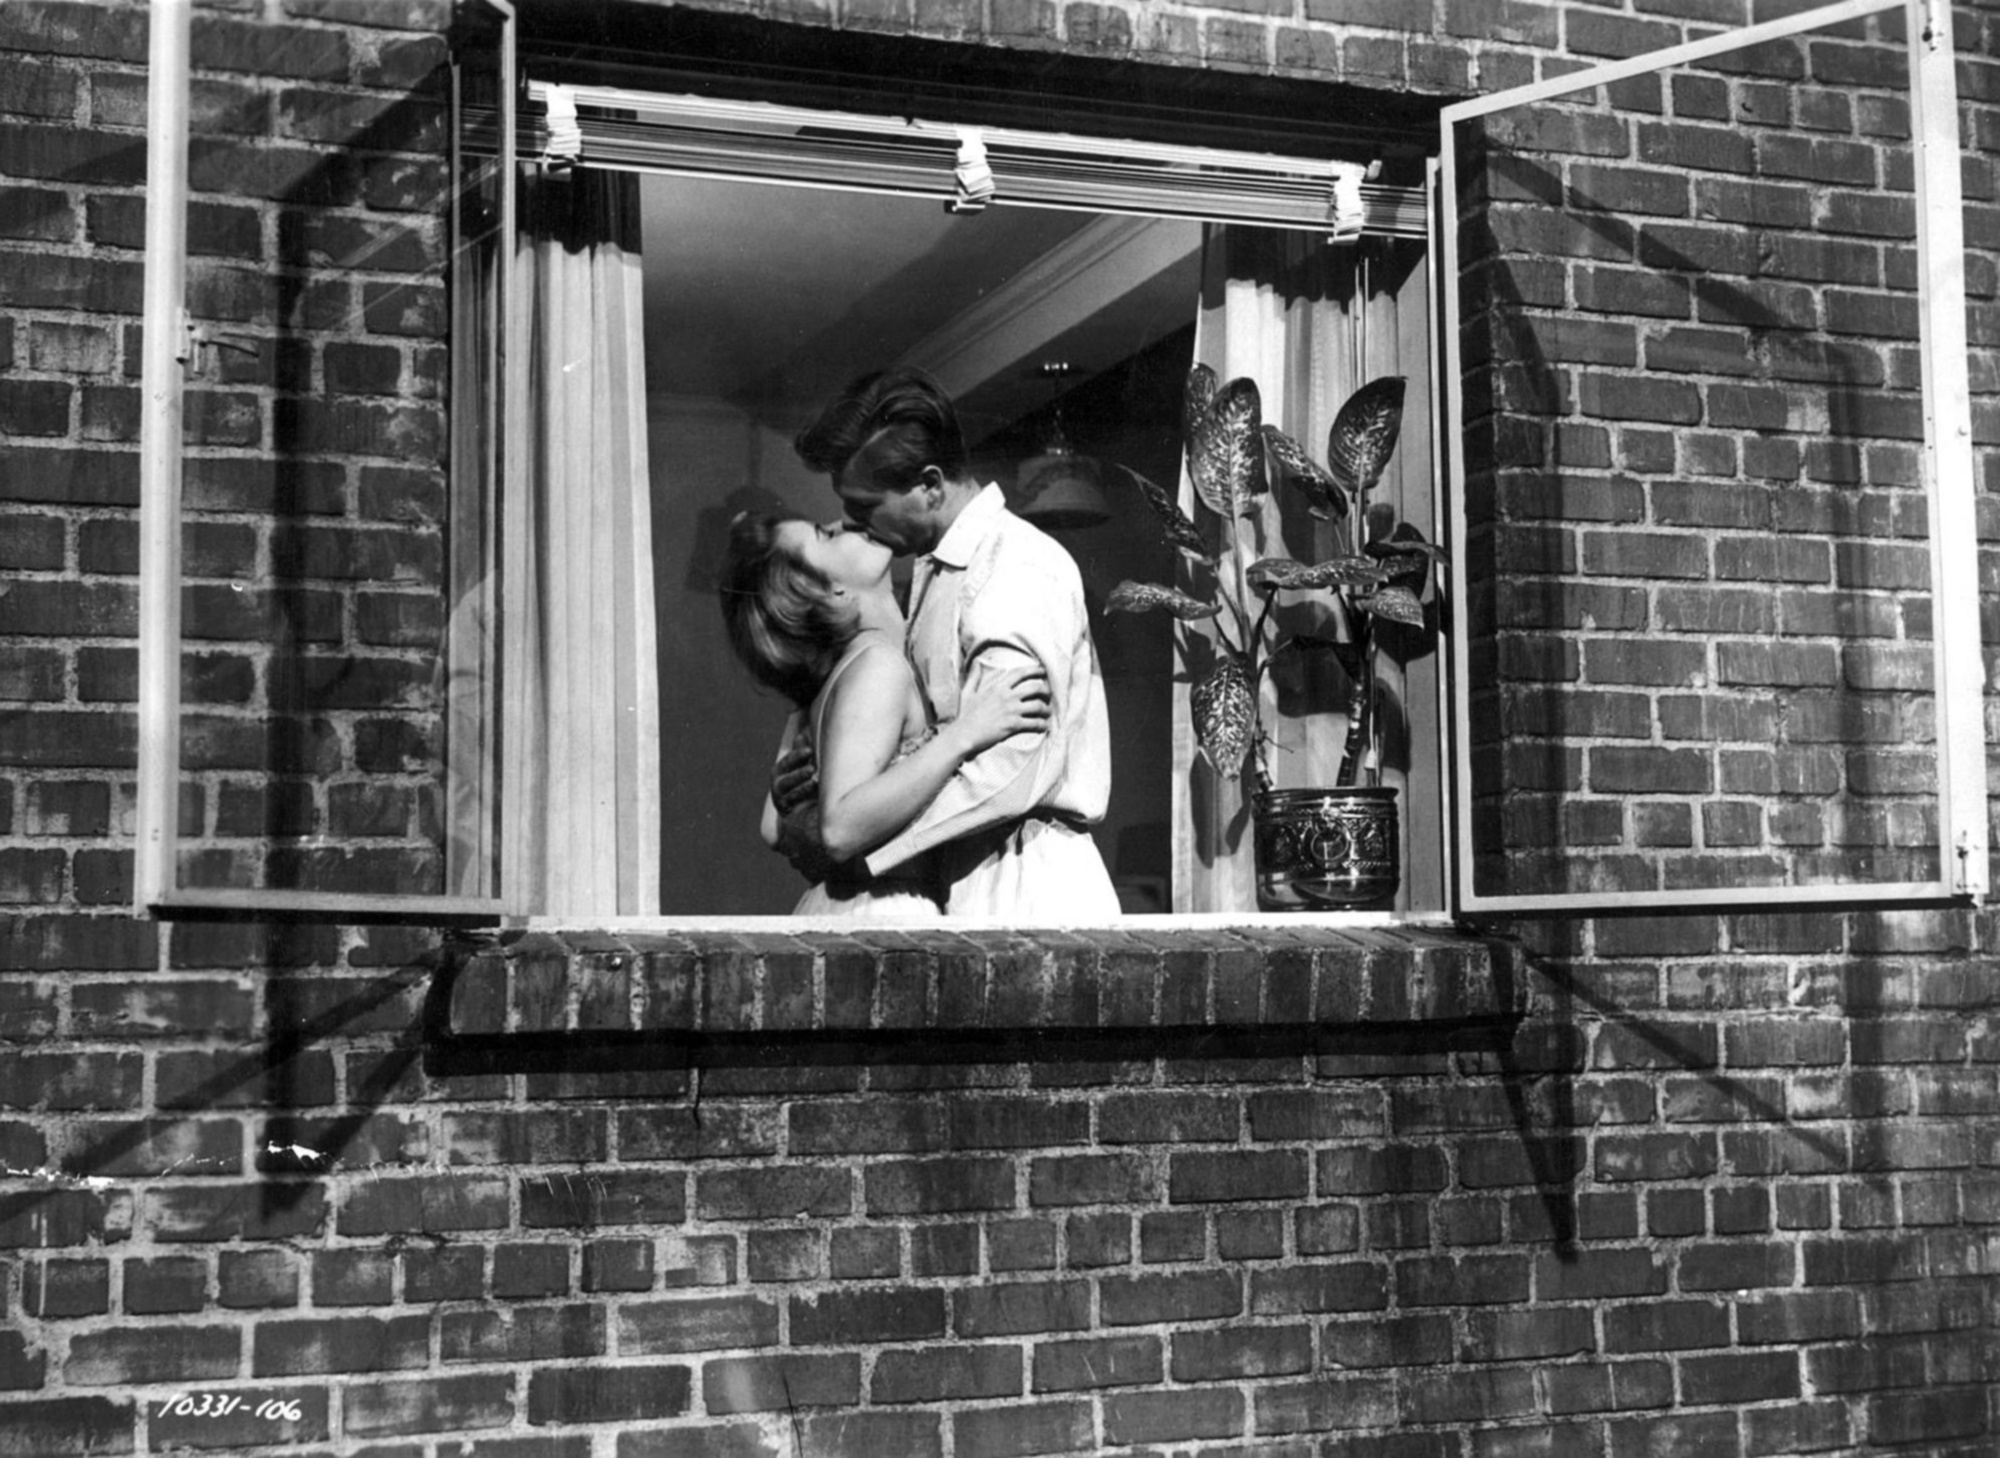 analysis of themes in rear window